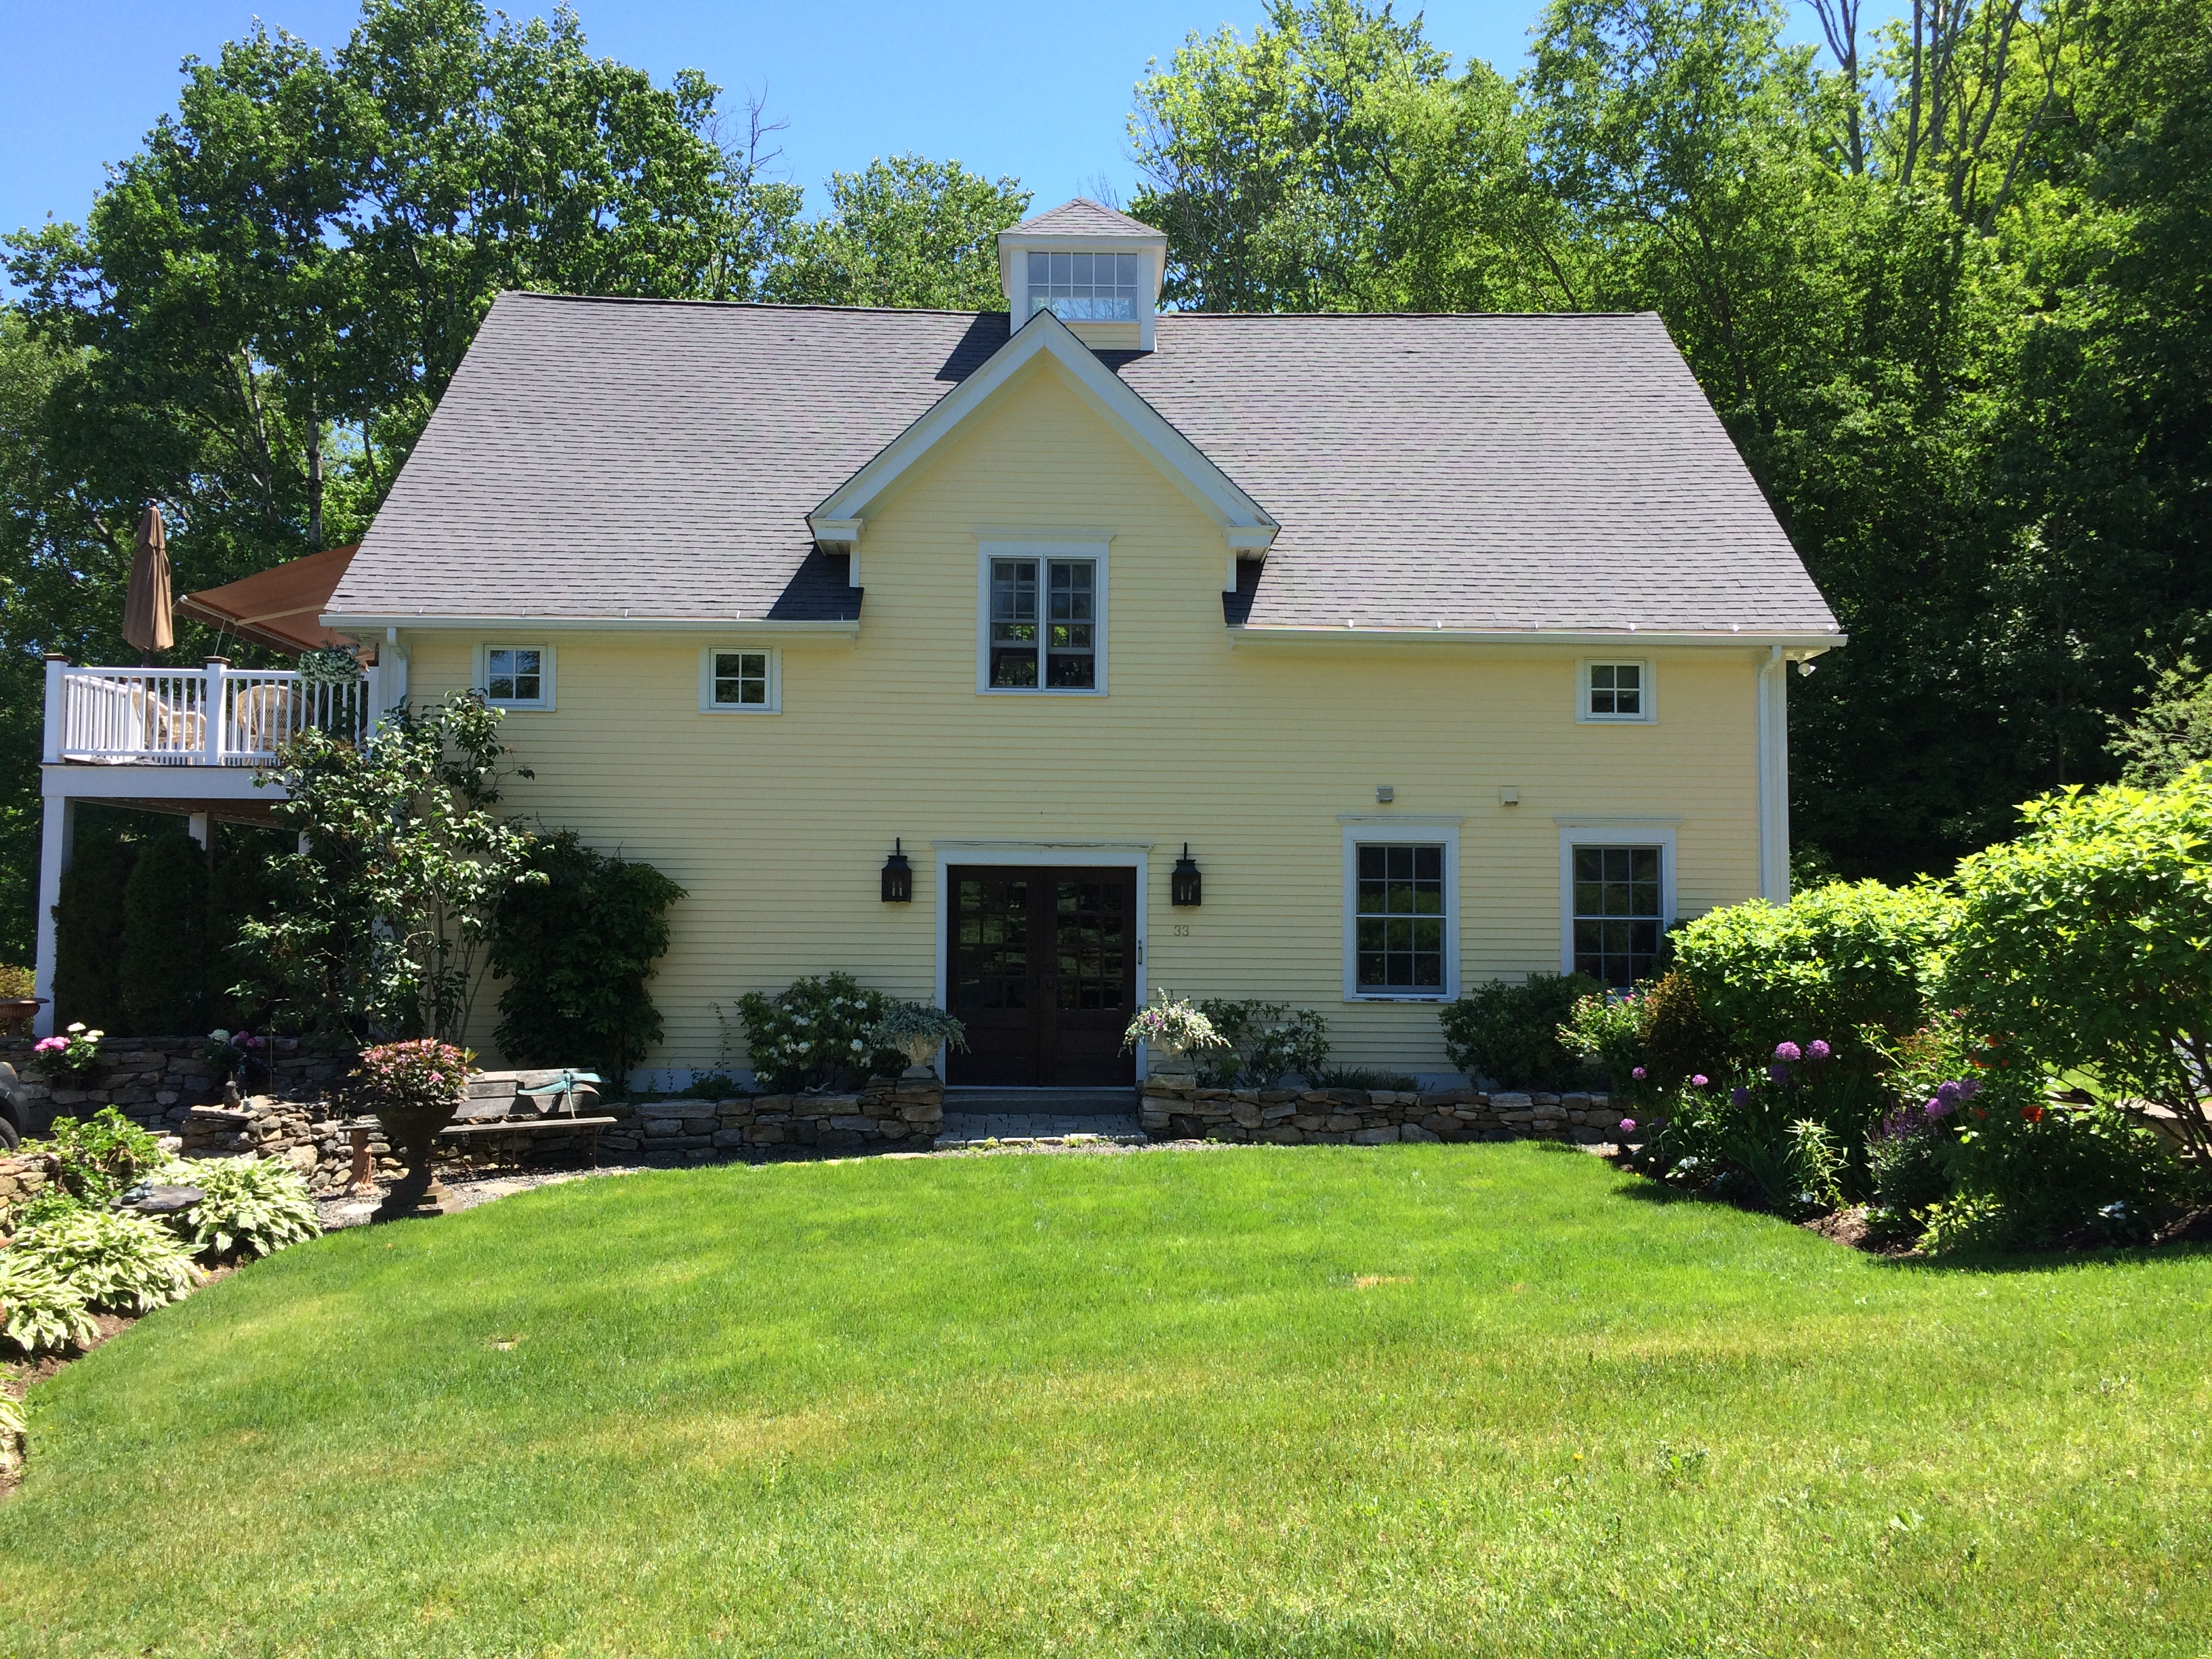 Single Family Home for Sale at Charming Country Home with Spectacular Views 33 Rabbit Hill Rd Warren, Connecticut, 06777 United States